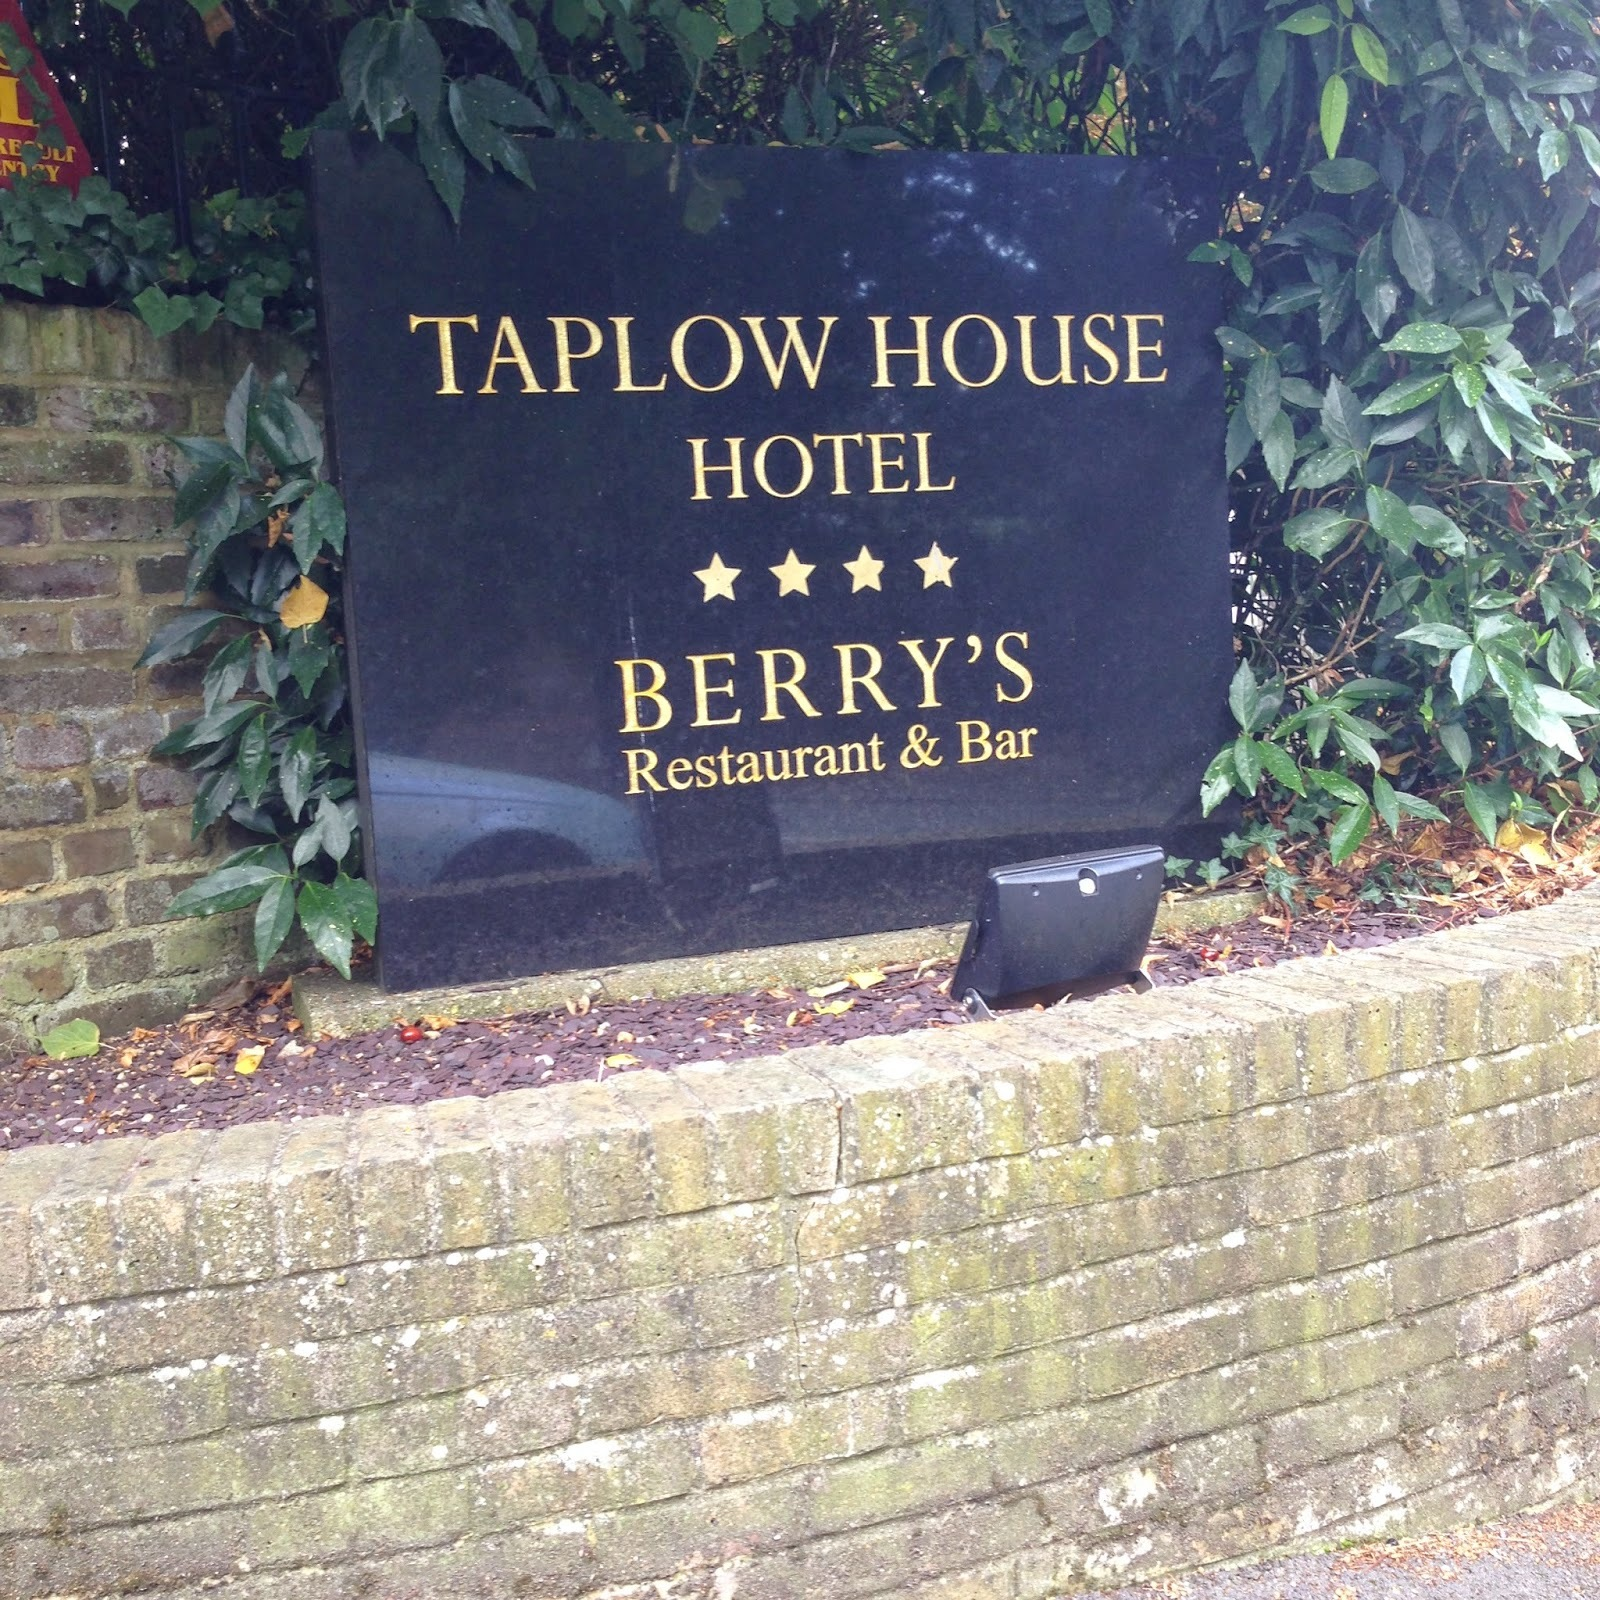 Taplow House Hotel - A Stunning Georgian Retreat